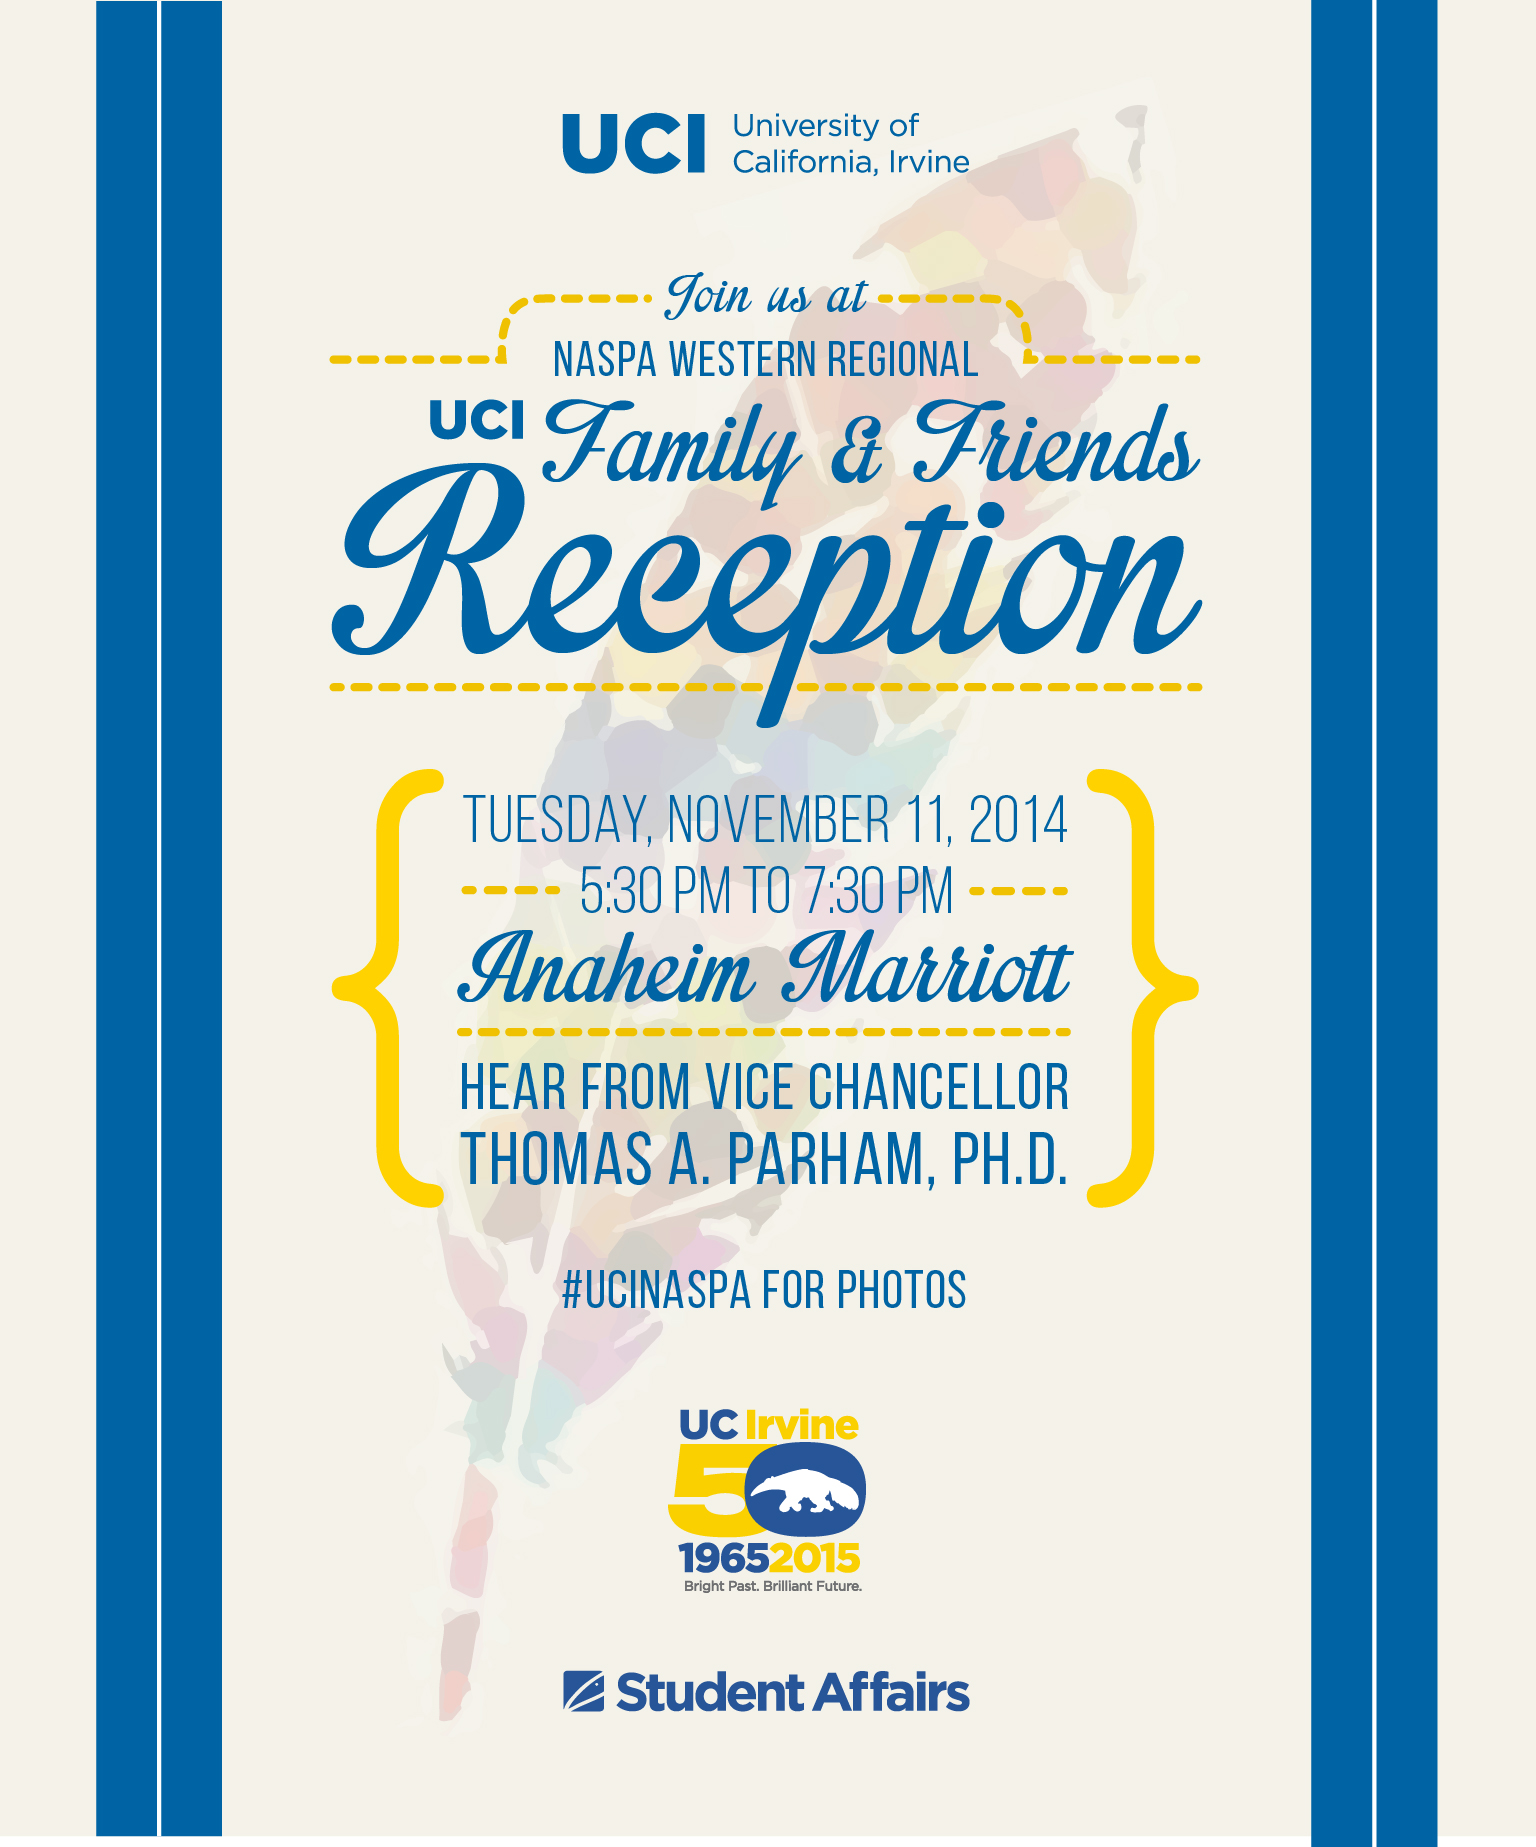 UCI Family & Friends Reception at NASPA Western Regional